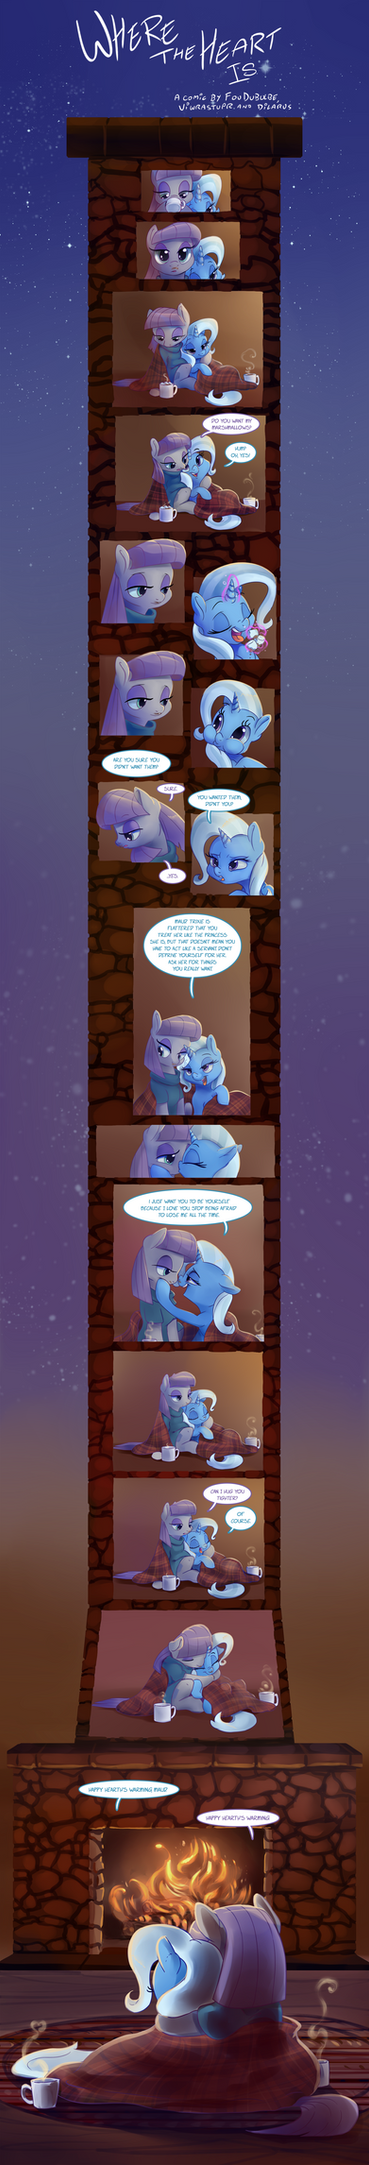 Where the Heart Is by Dilarus